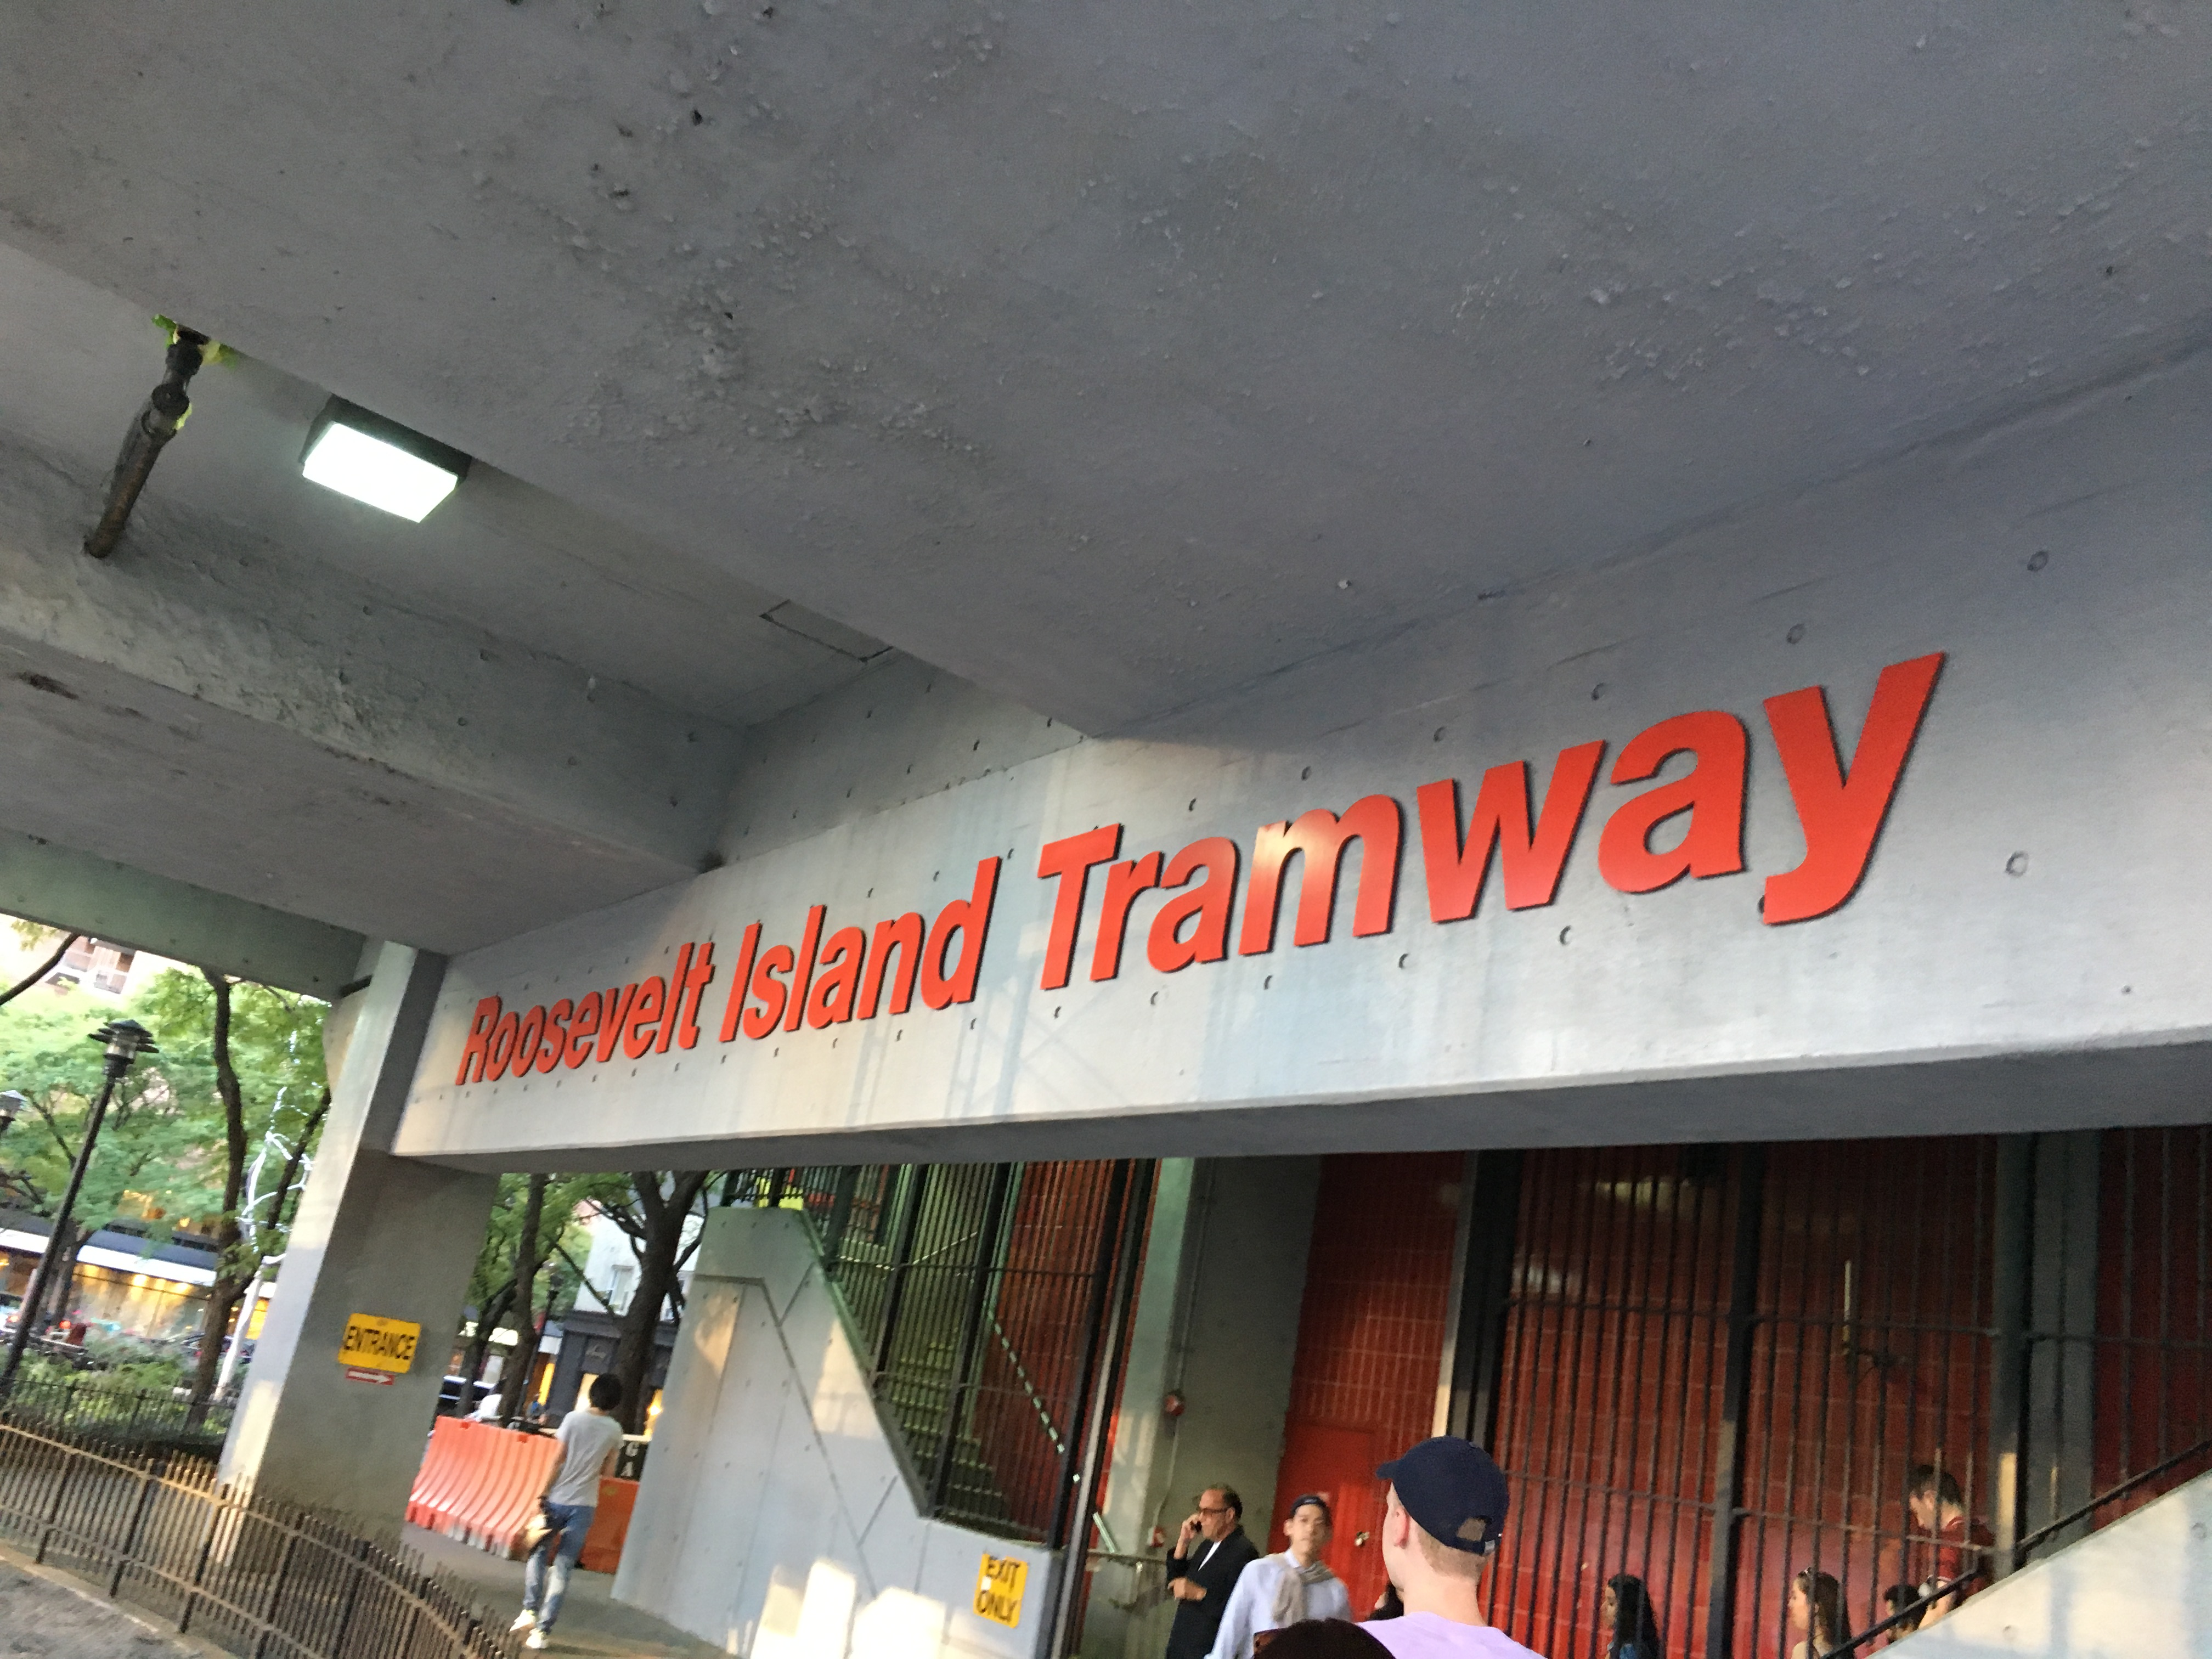 Roosevelt Island Tramway stop